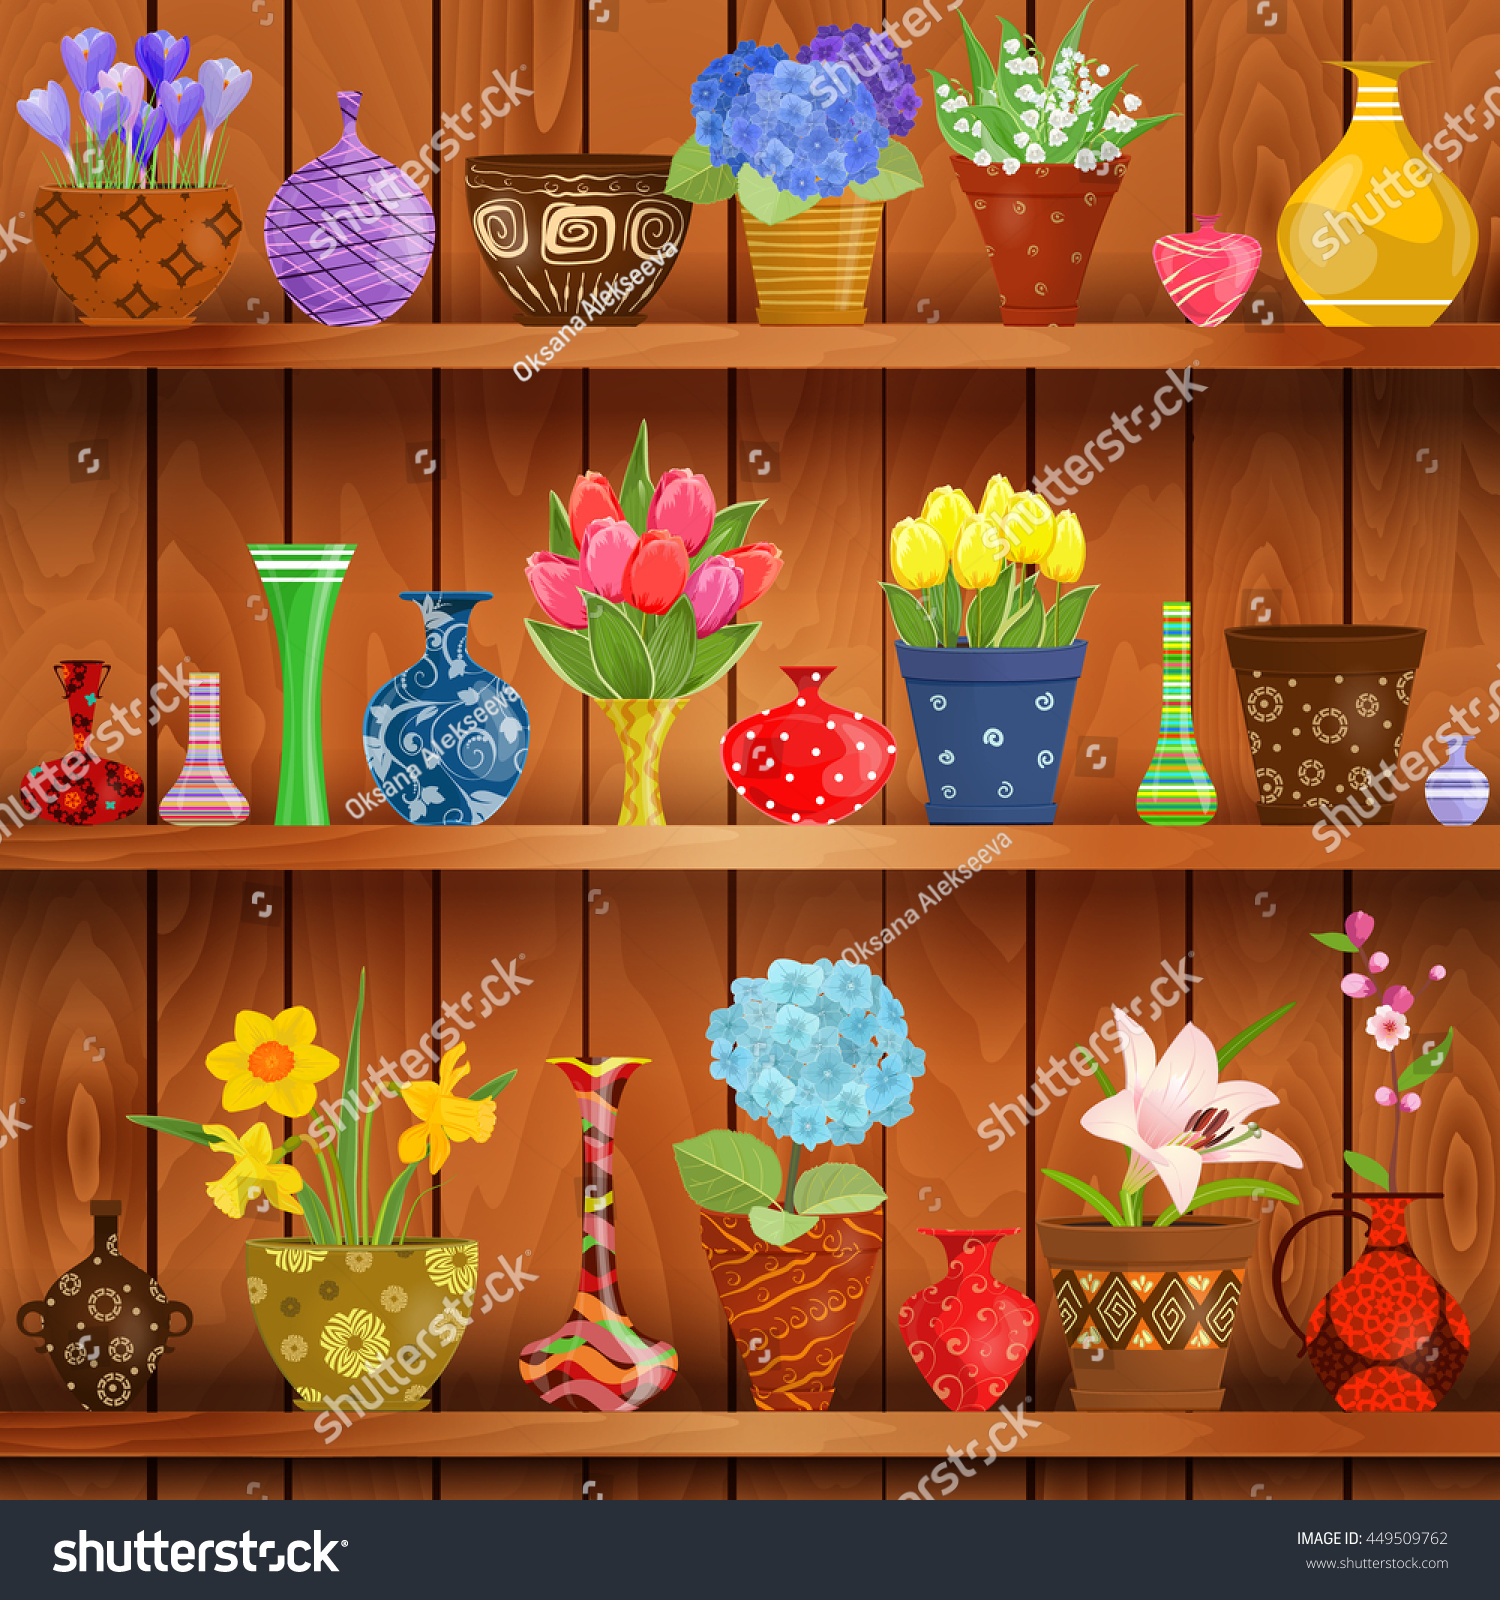 Interior wooden shelves free vector - Rustic Interior With Glass Vases And Flowers Planted In Cute Ceramic Pots On Wooden Shelves